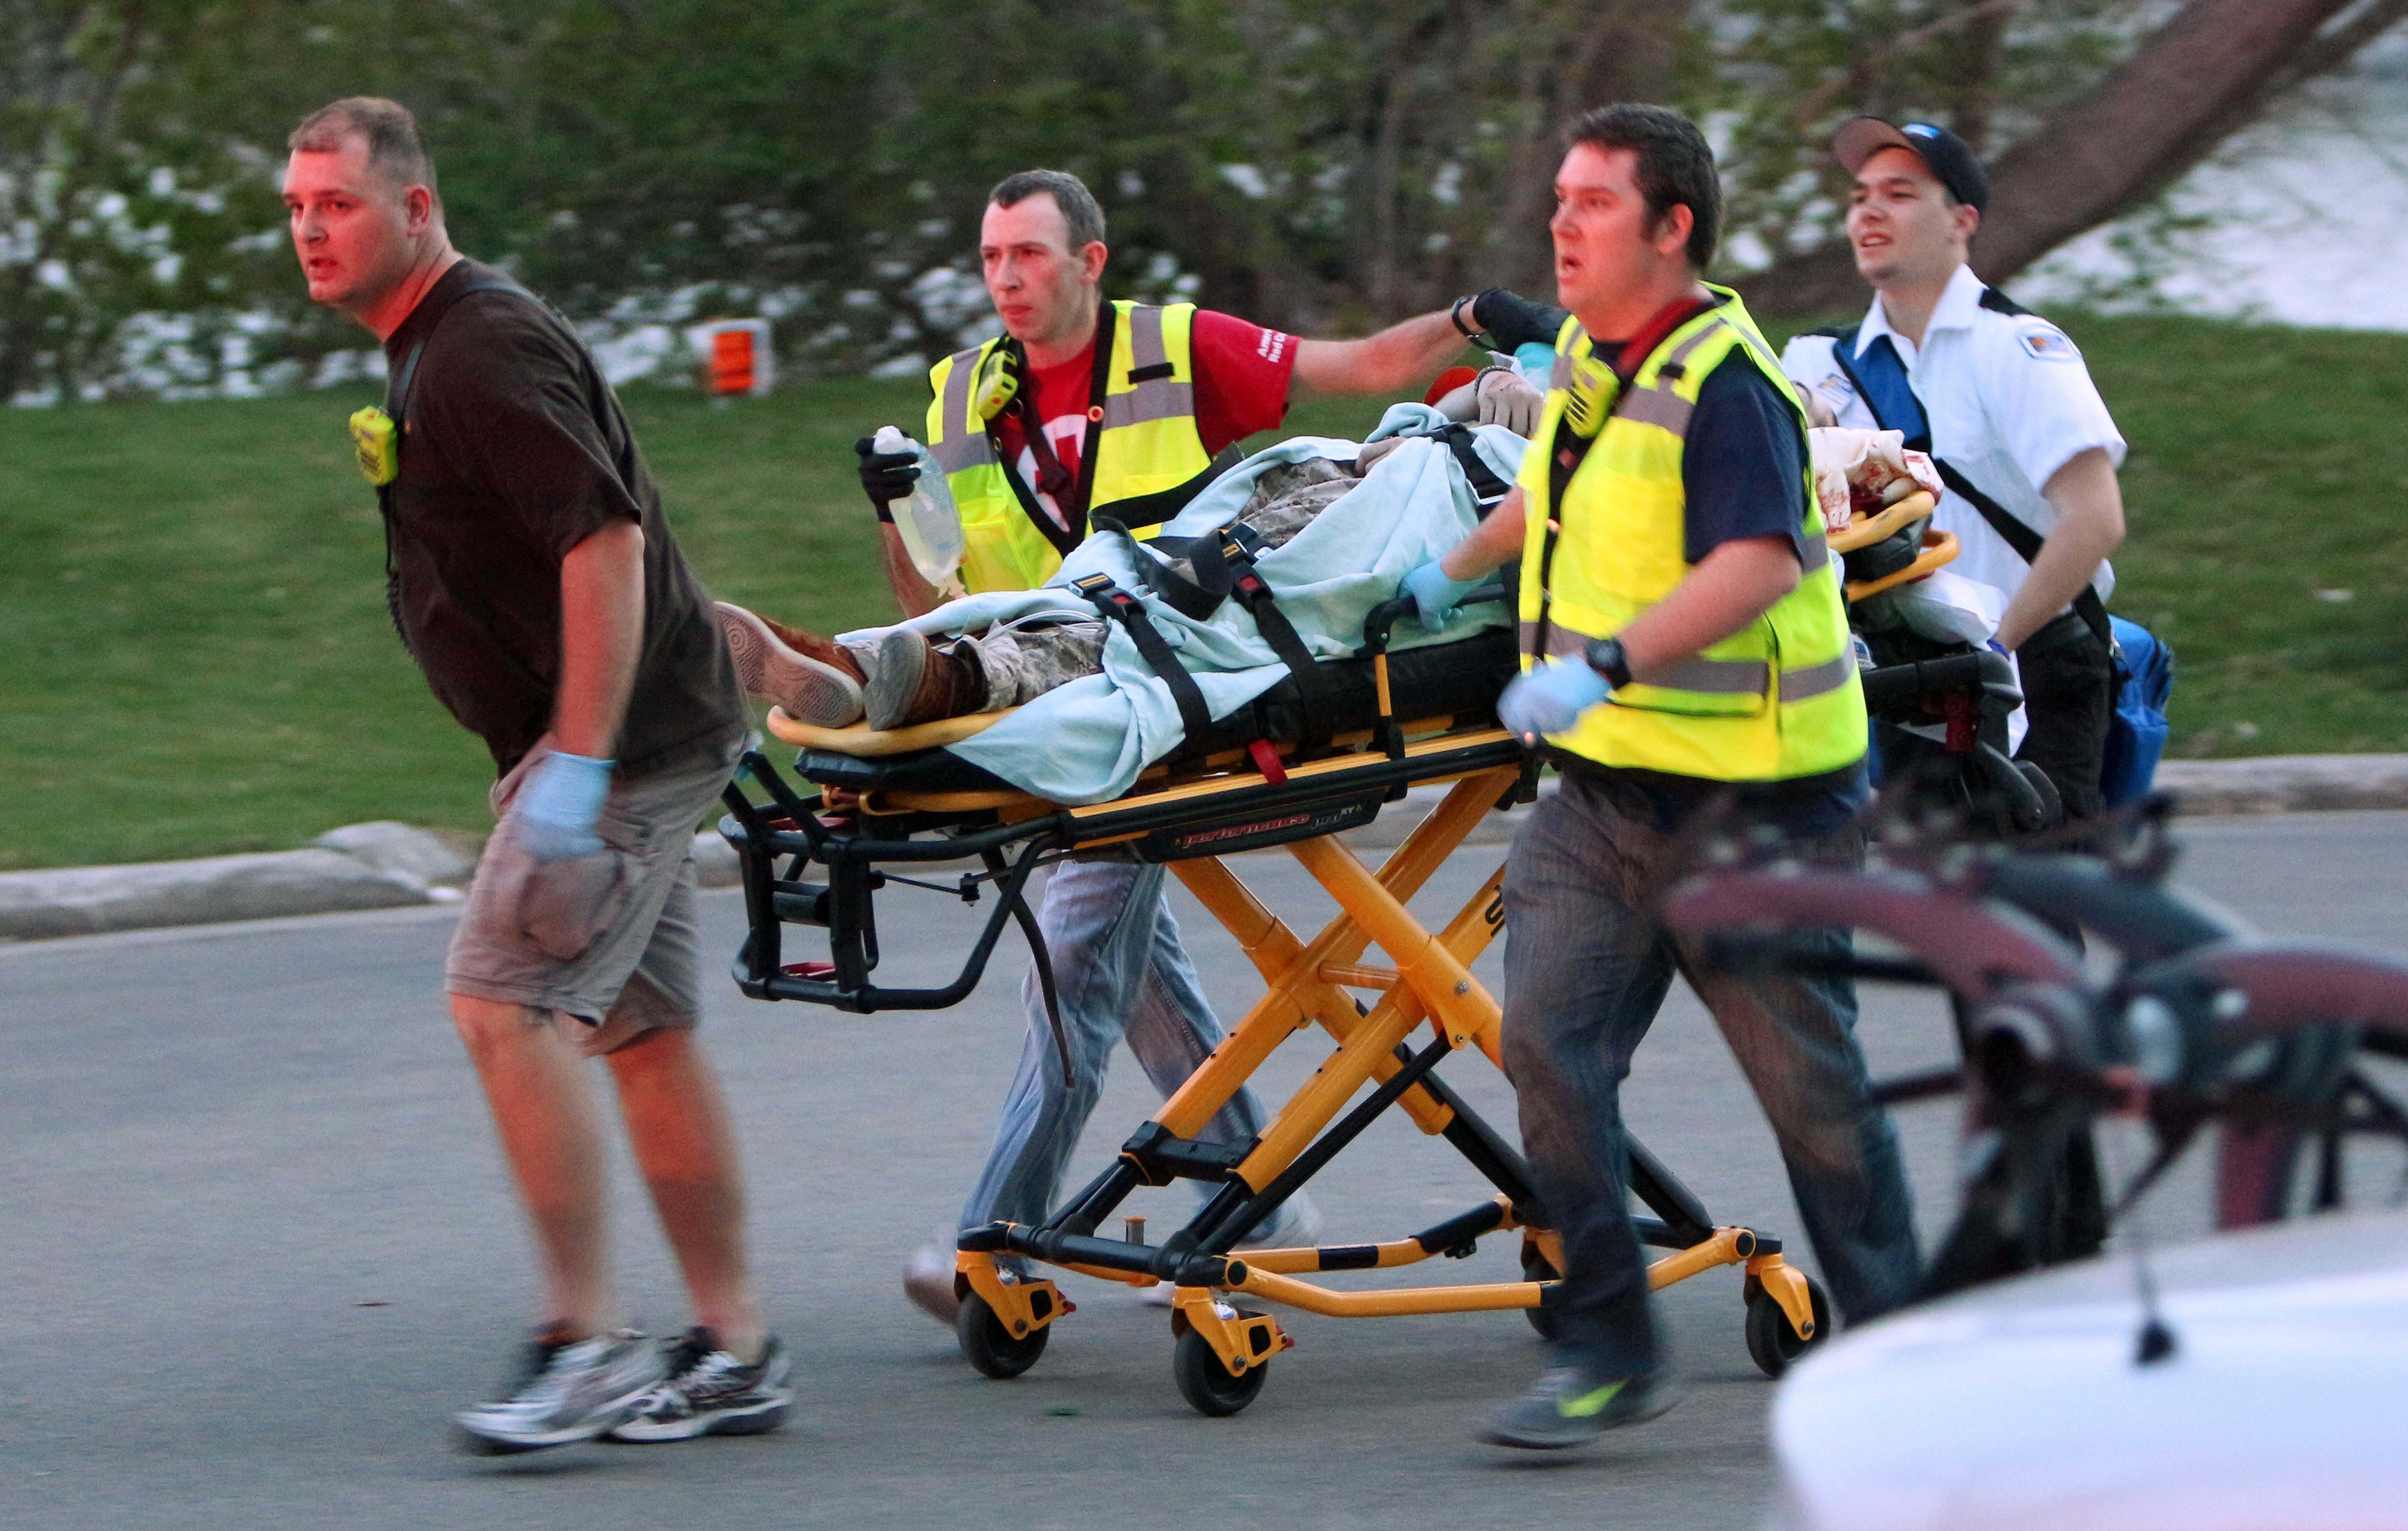 Wisconsin family's bike ride turns deadly as shooting erupts